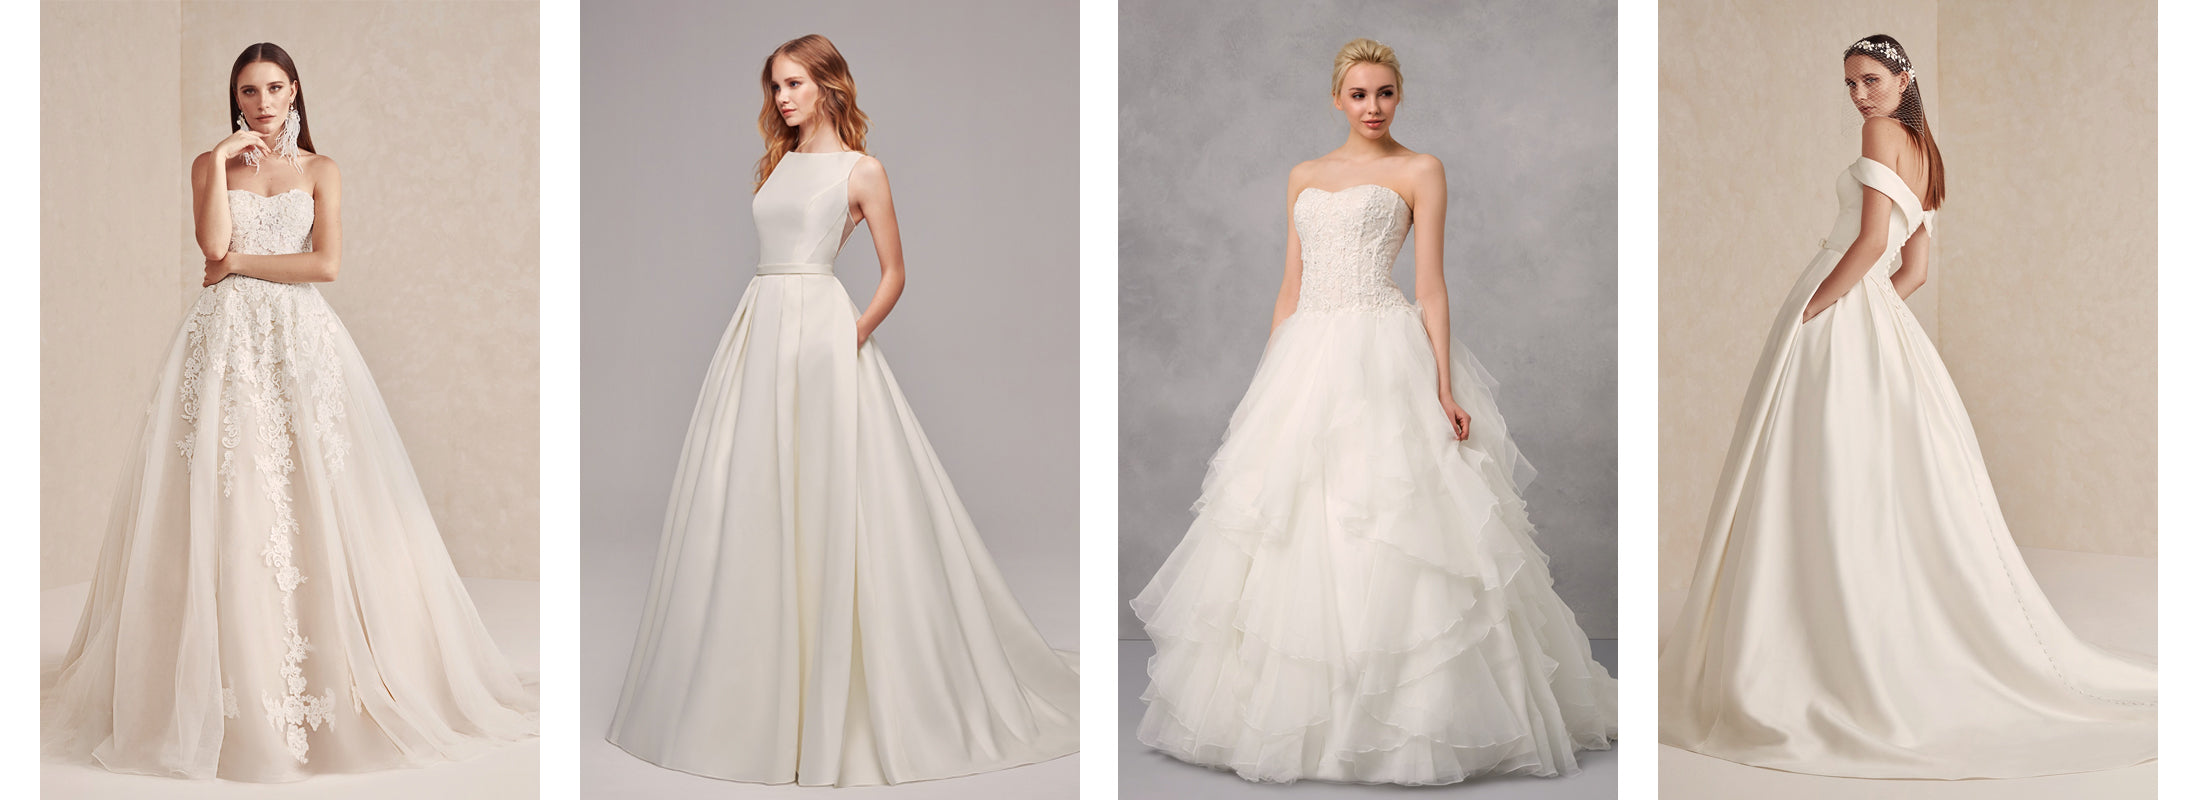 Oleg Cassini Ball Gowns - Finding the perfect dress